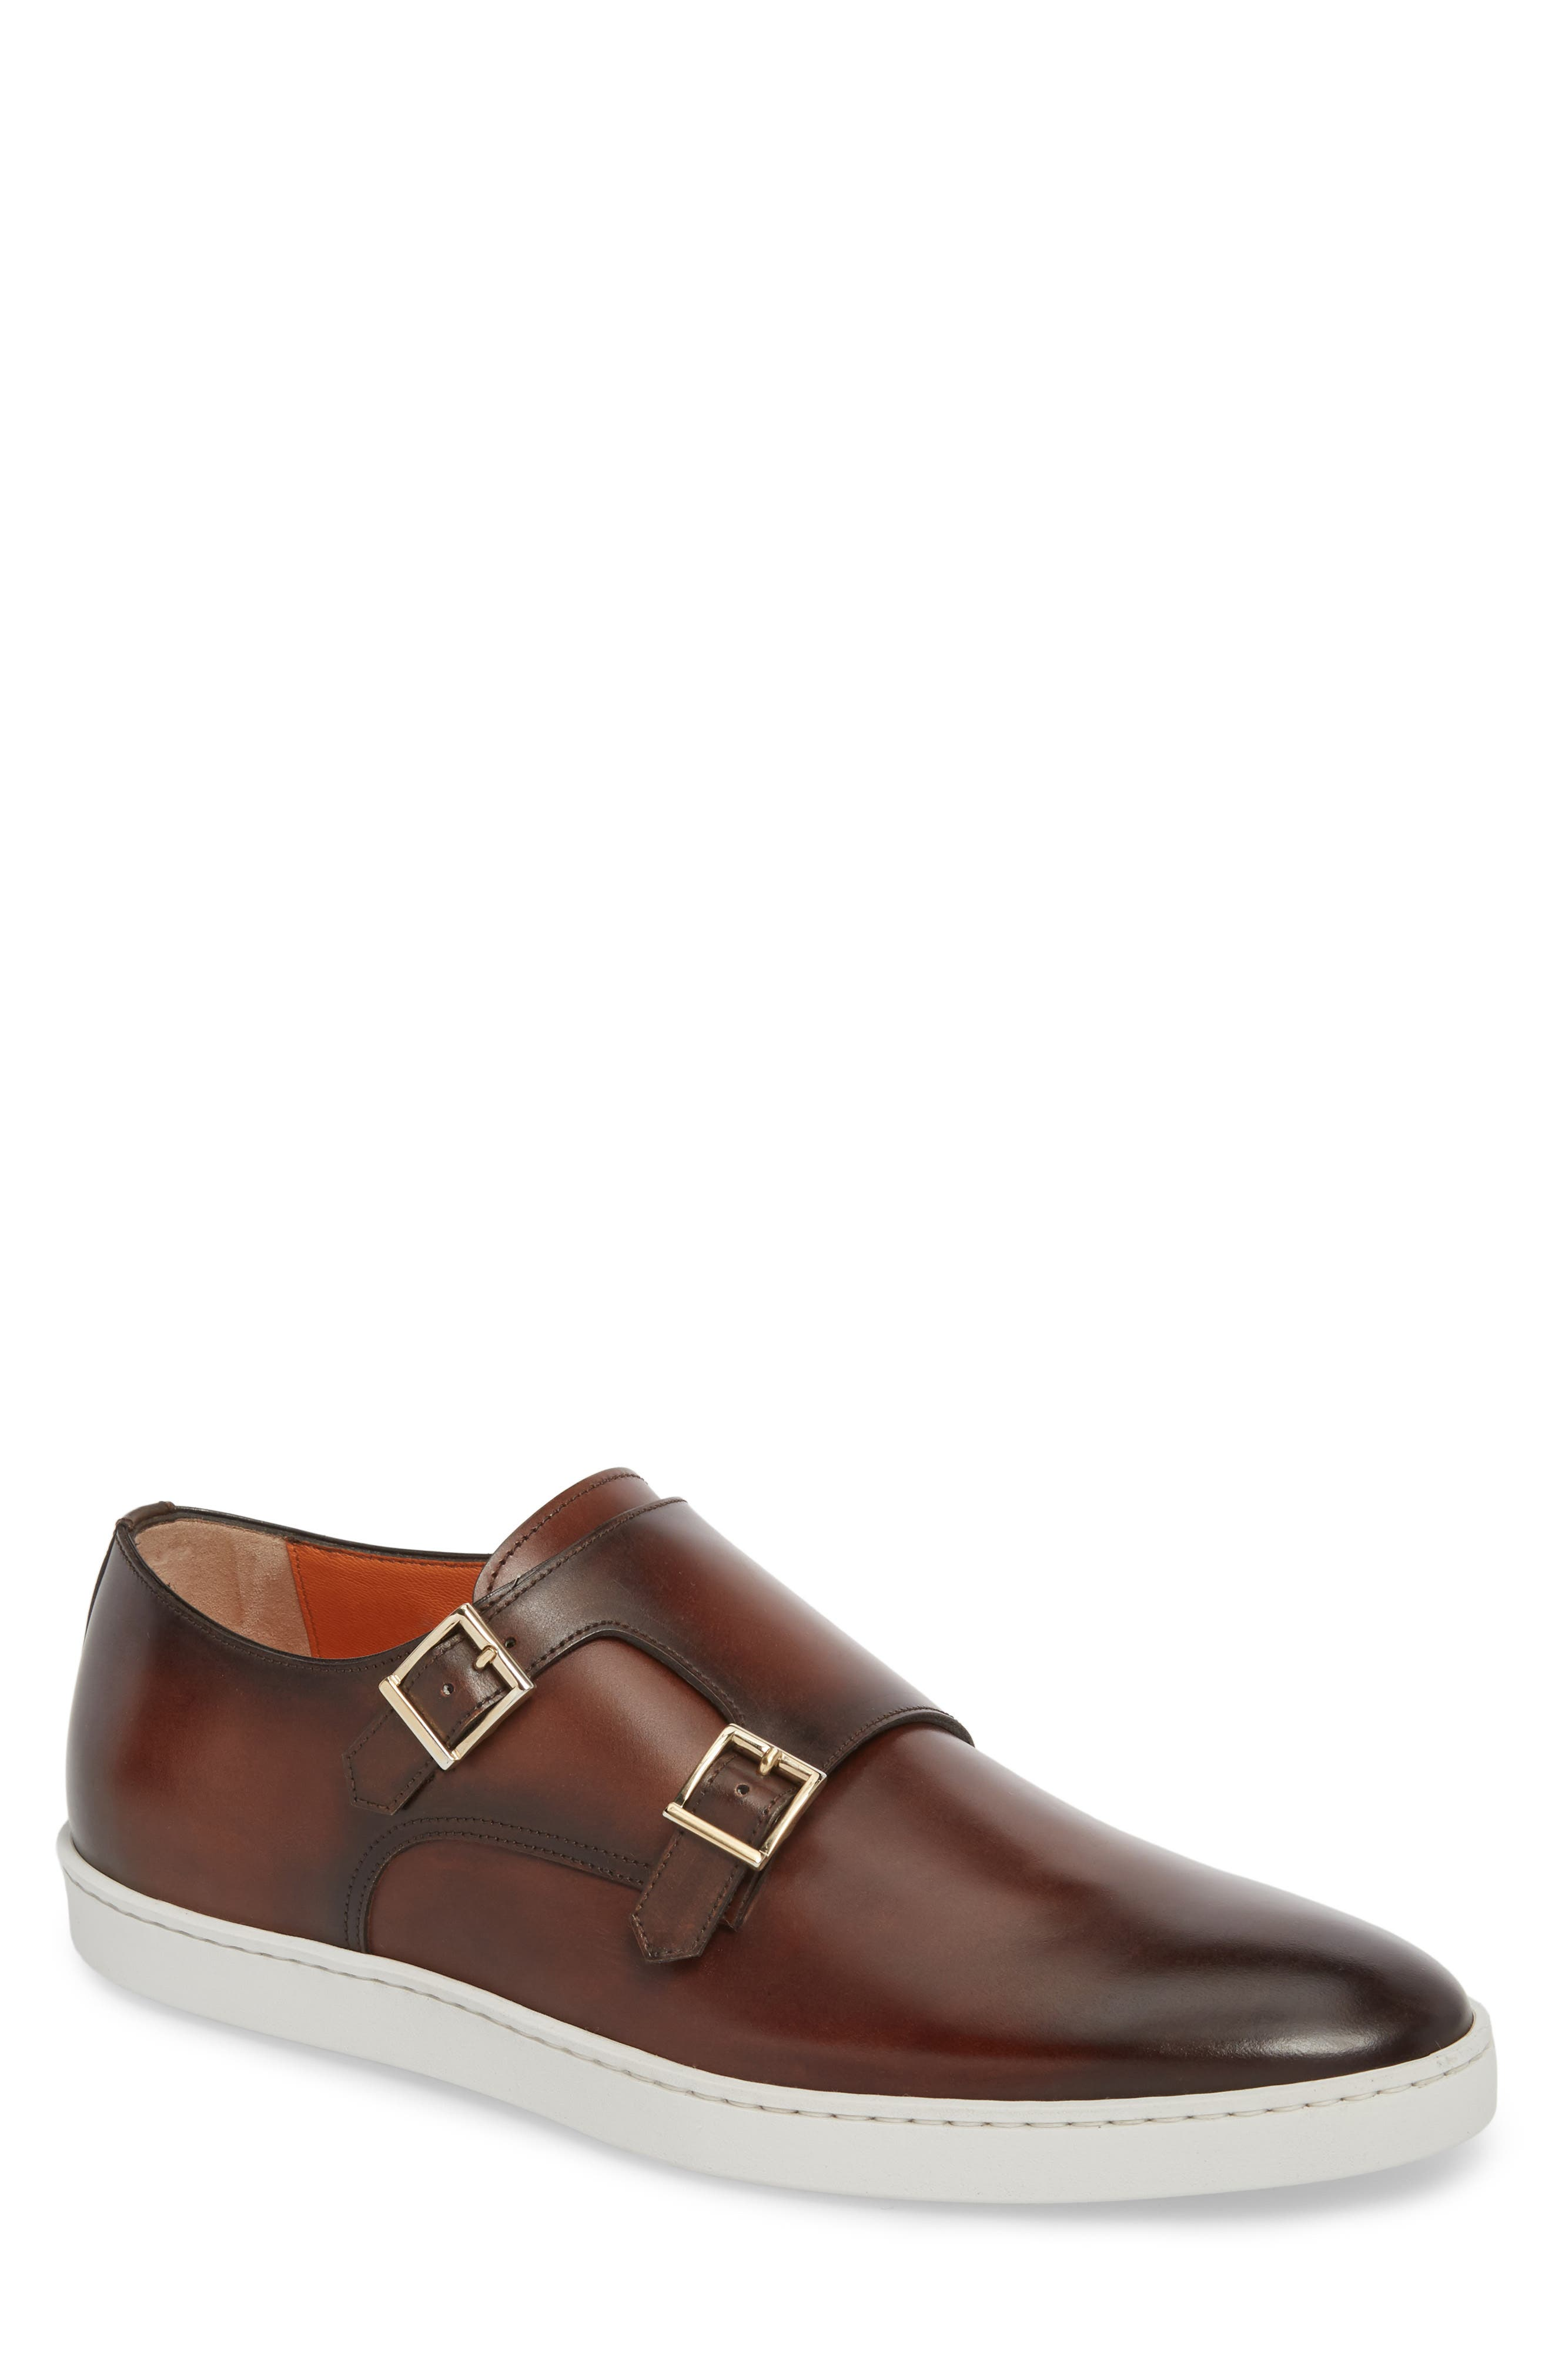 Freemont Double Monk Strap Shoe,                         Main,                         color, Brown